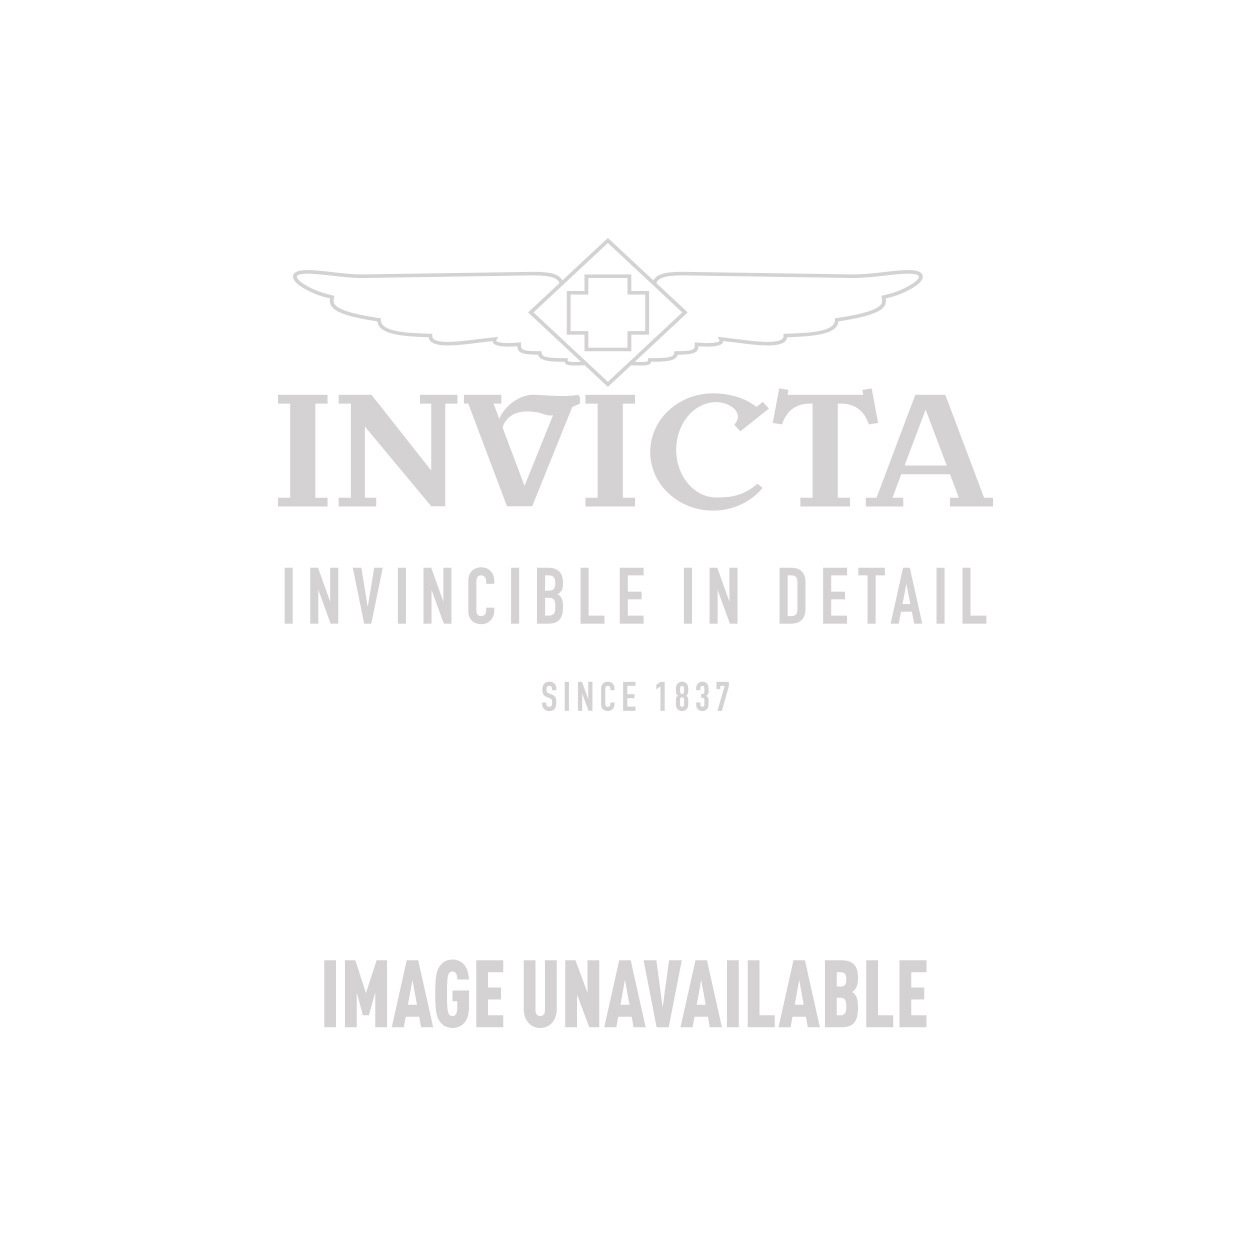 Invicta Specialty Swiss Movement Quartz Watch - Rose Gold case with Black tone Polyurethane band - Model 11387